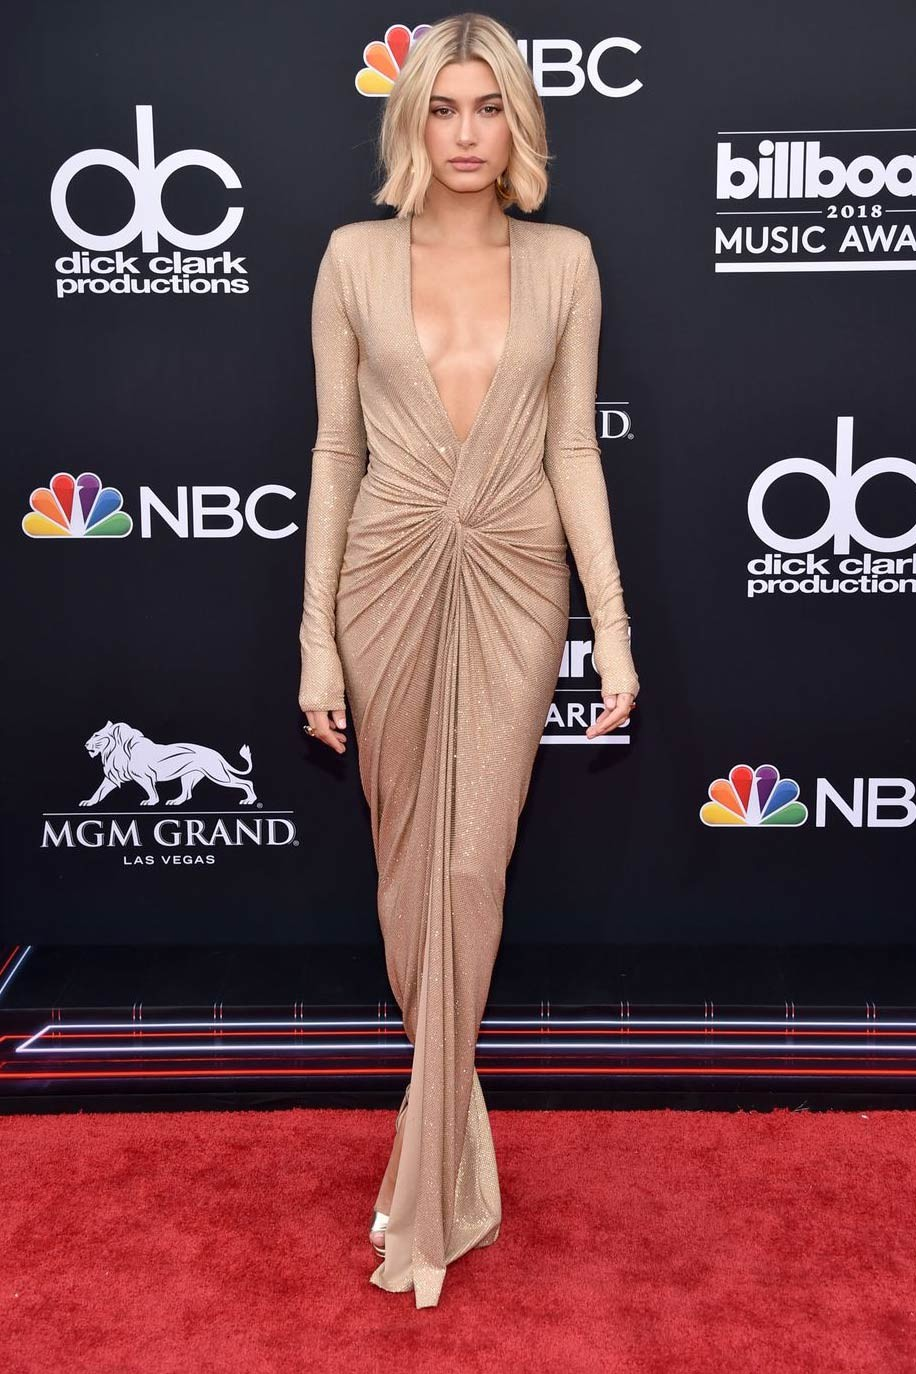 Best Looks From the Billboard Music Awards 2018